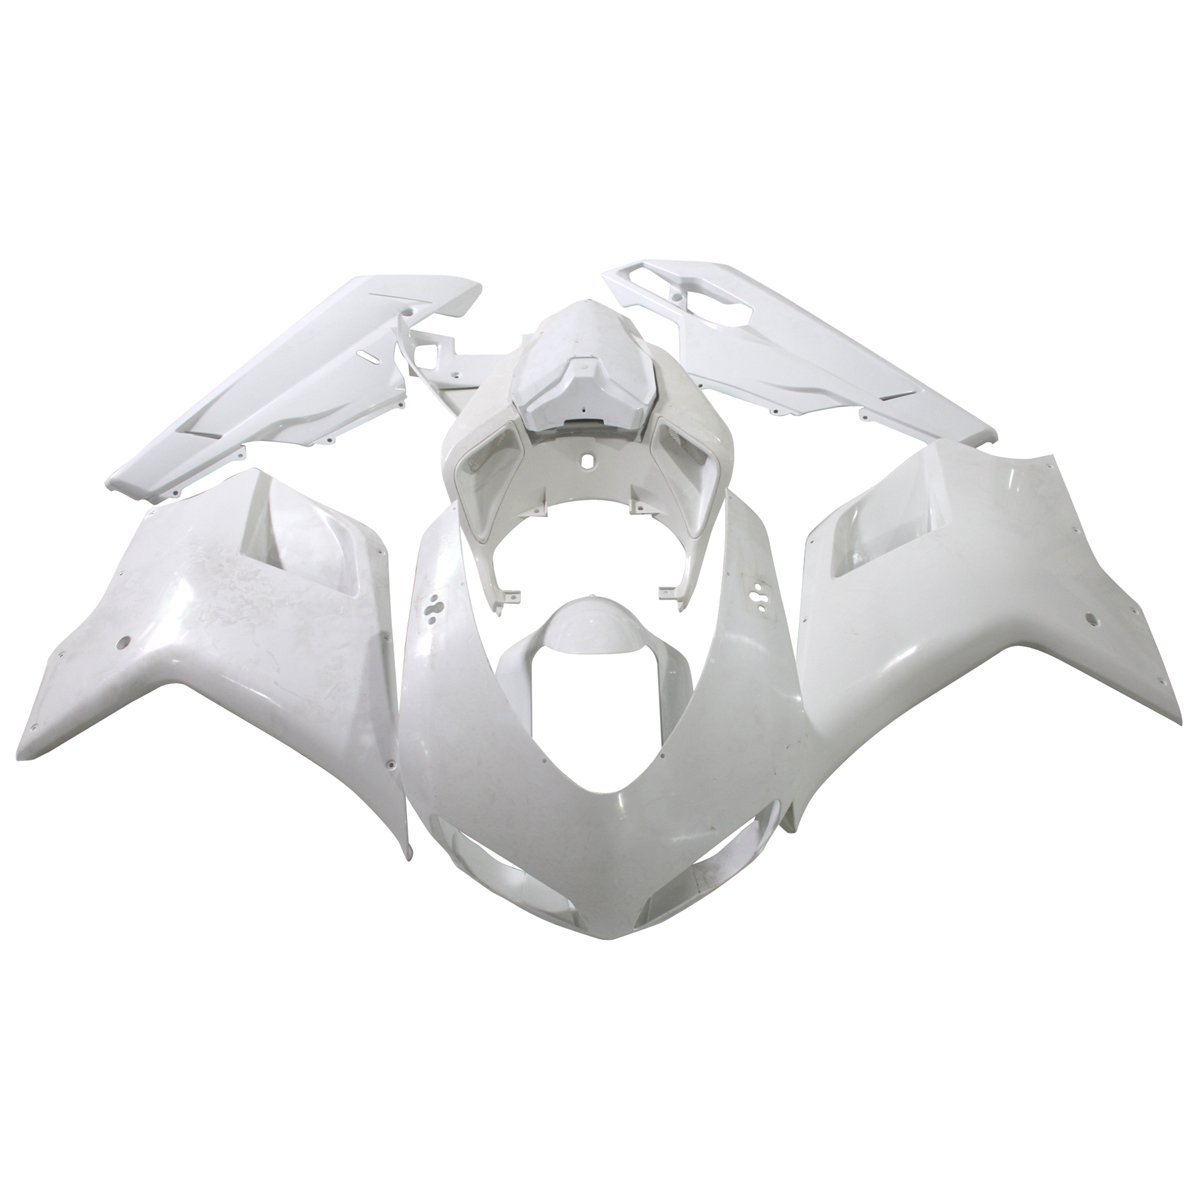 ABS Plastic Injection Bodywork Fairing Kit For Ducati 848 1098 1198 2007 - 2011 2010 2009 Motorcycle Unpainted Fairings Cowl